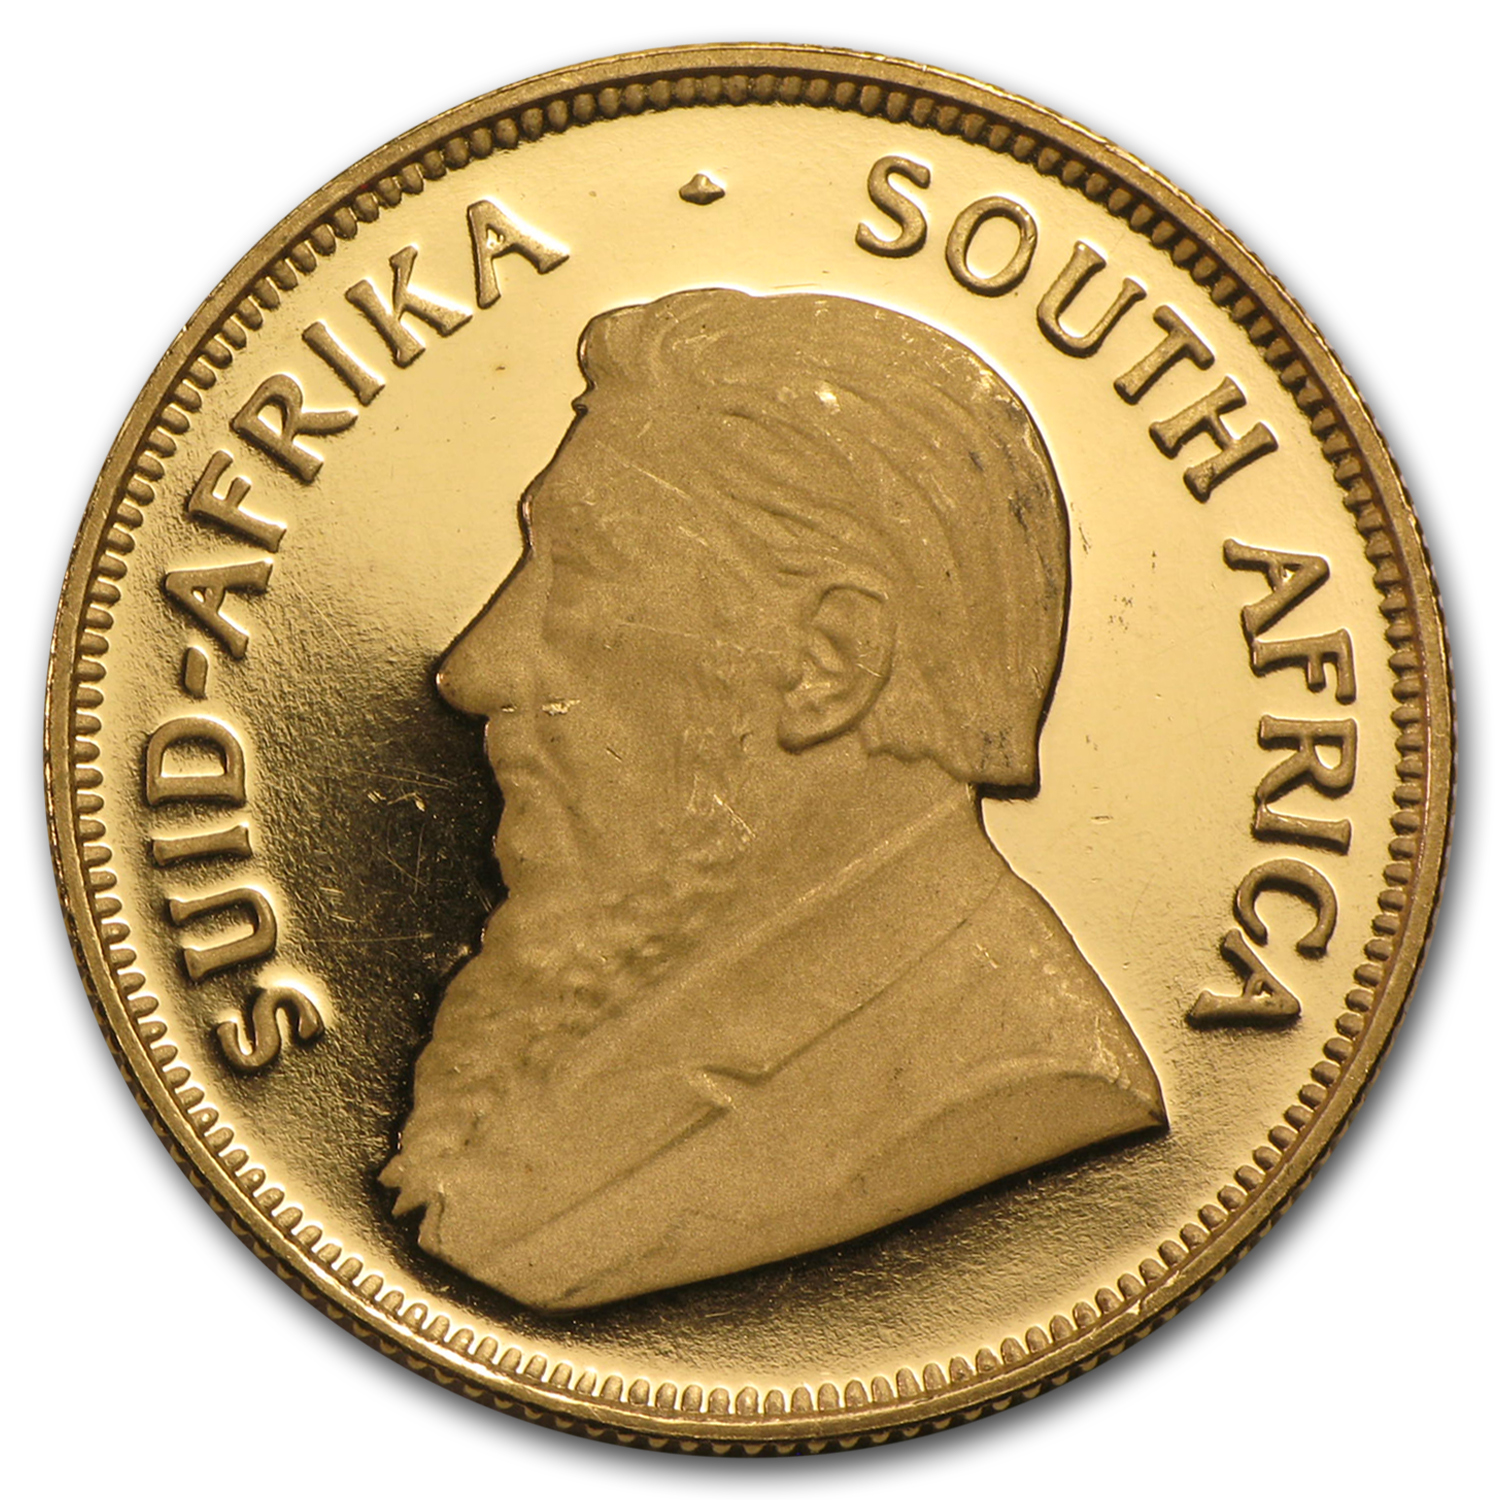 1997 1/2 oz Gold South African Krugerrand (Proof) (30th Ann)